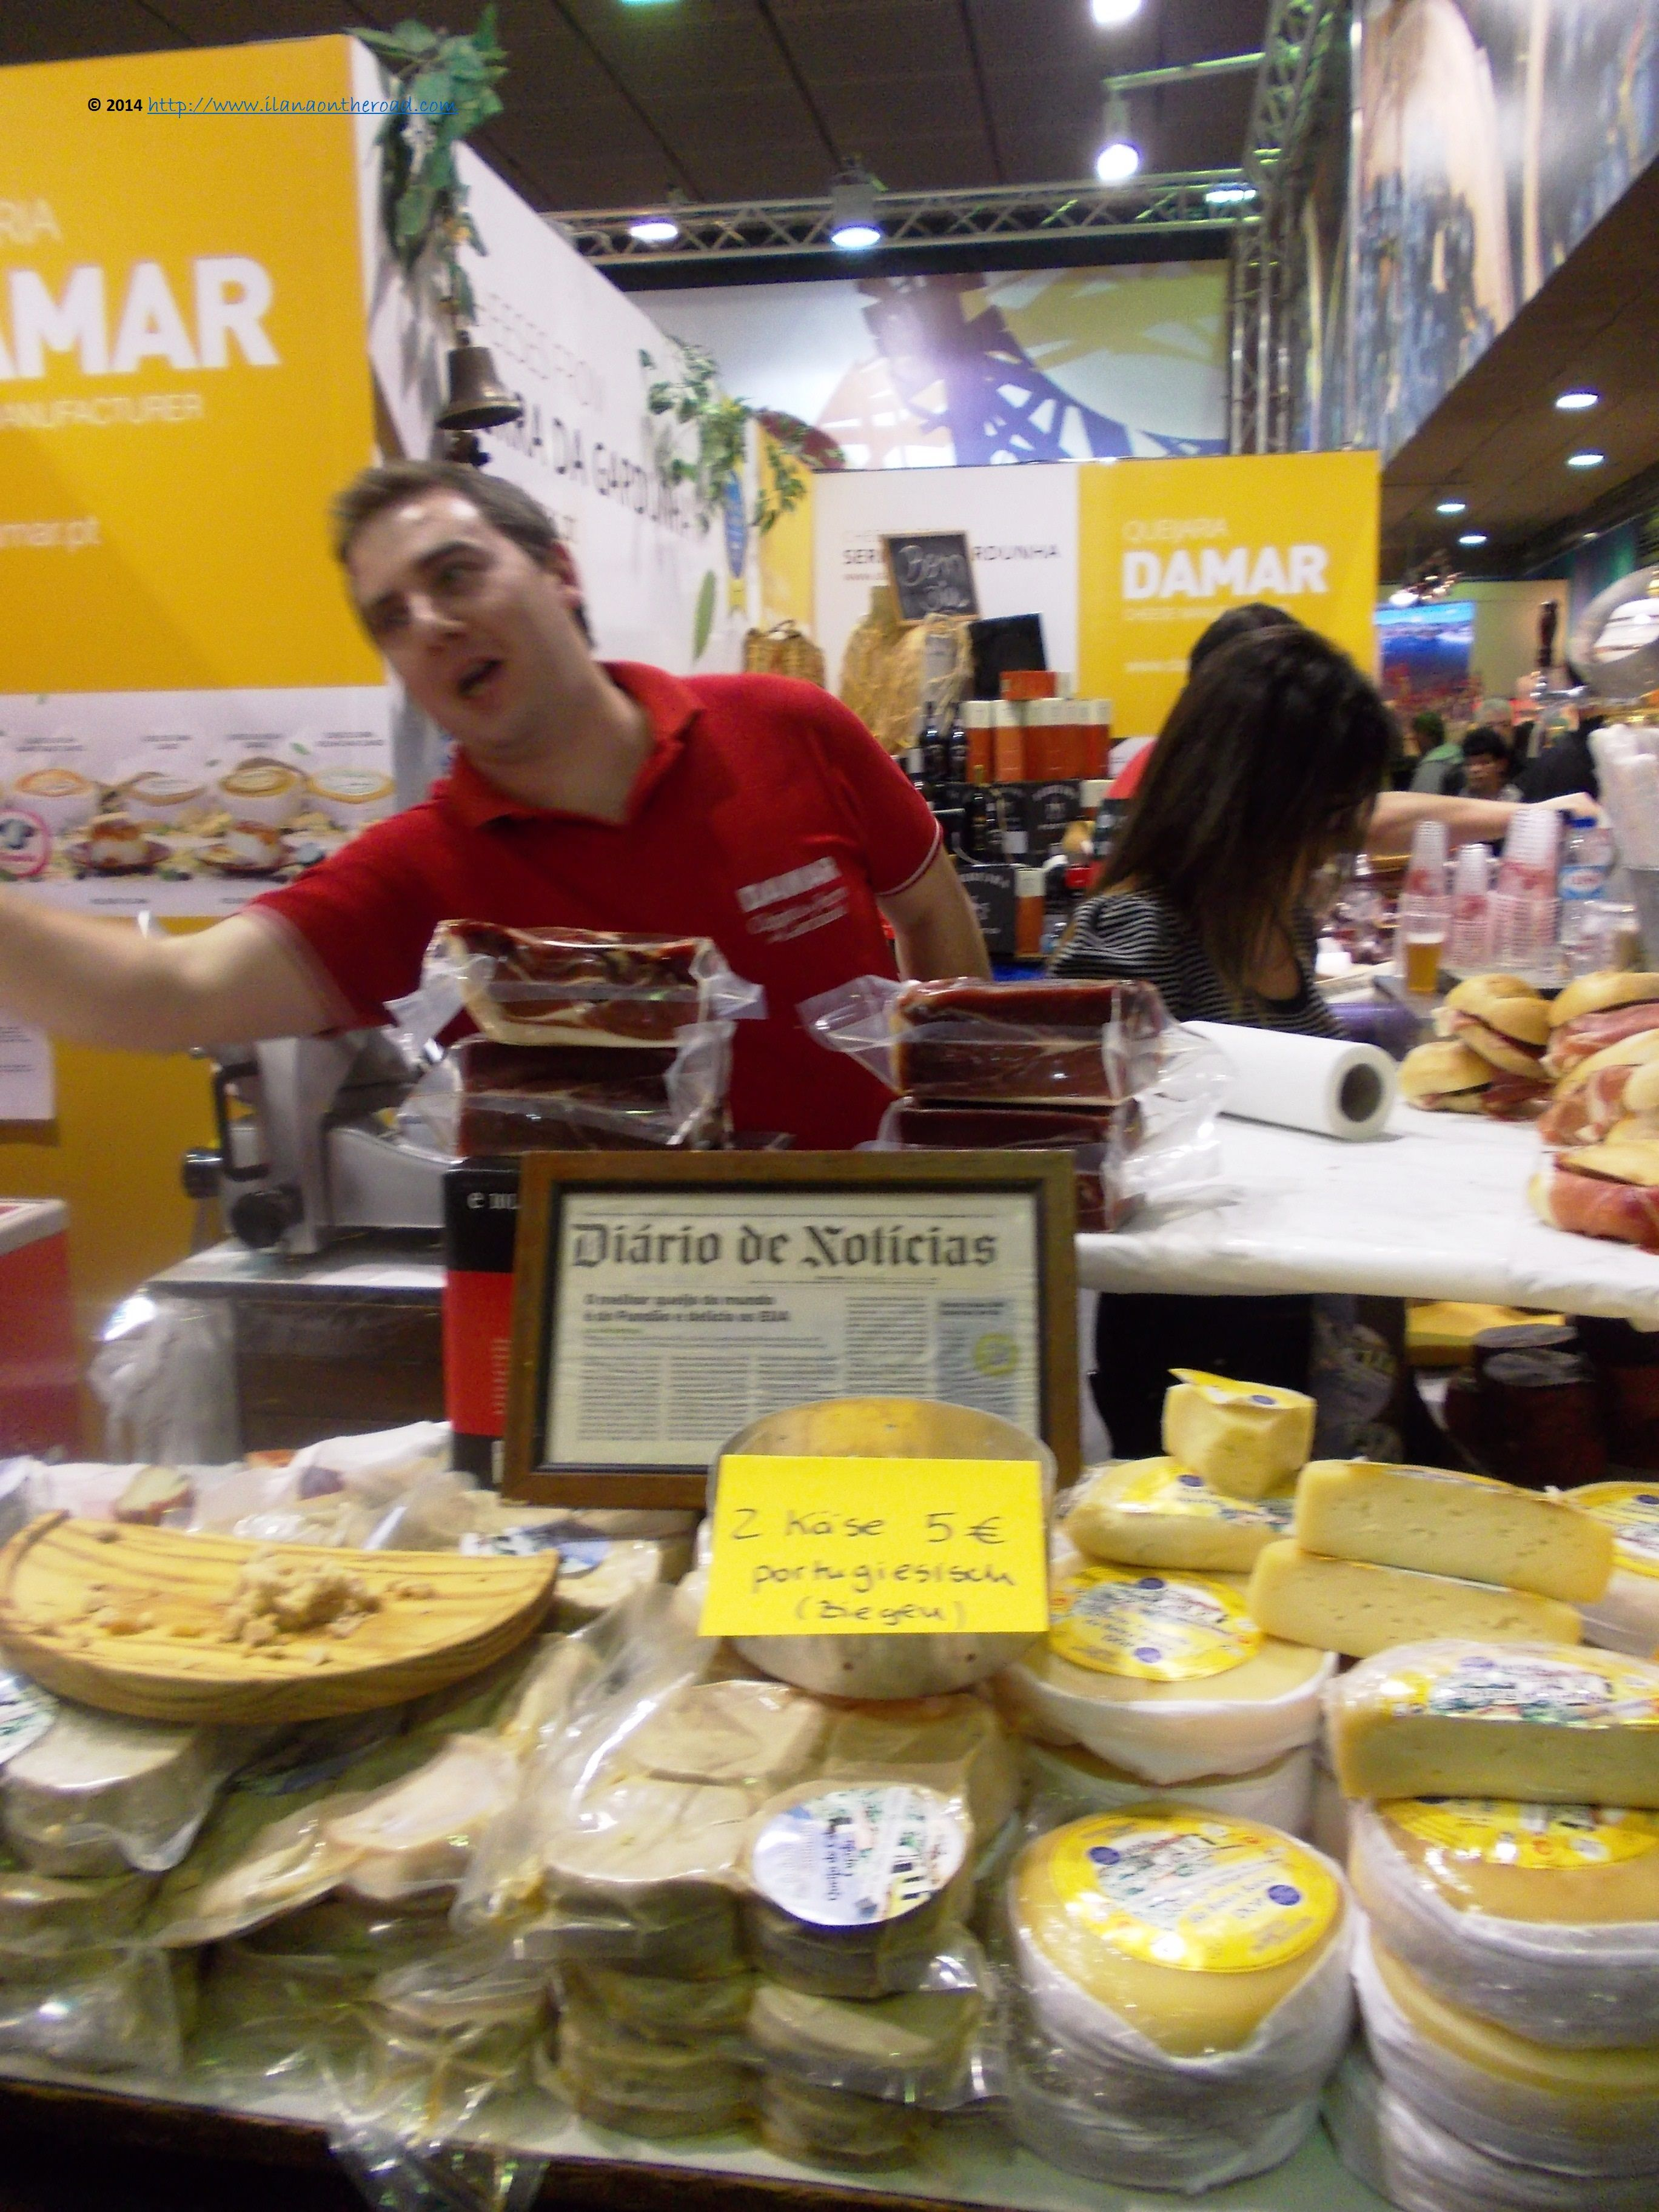 A foodie tour of the world in less than 365 days: http://foreignerinberlin.blogspot.de/2014/01/sunday-at-international-green-week.html